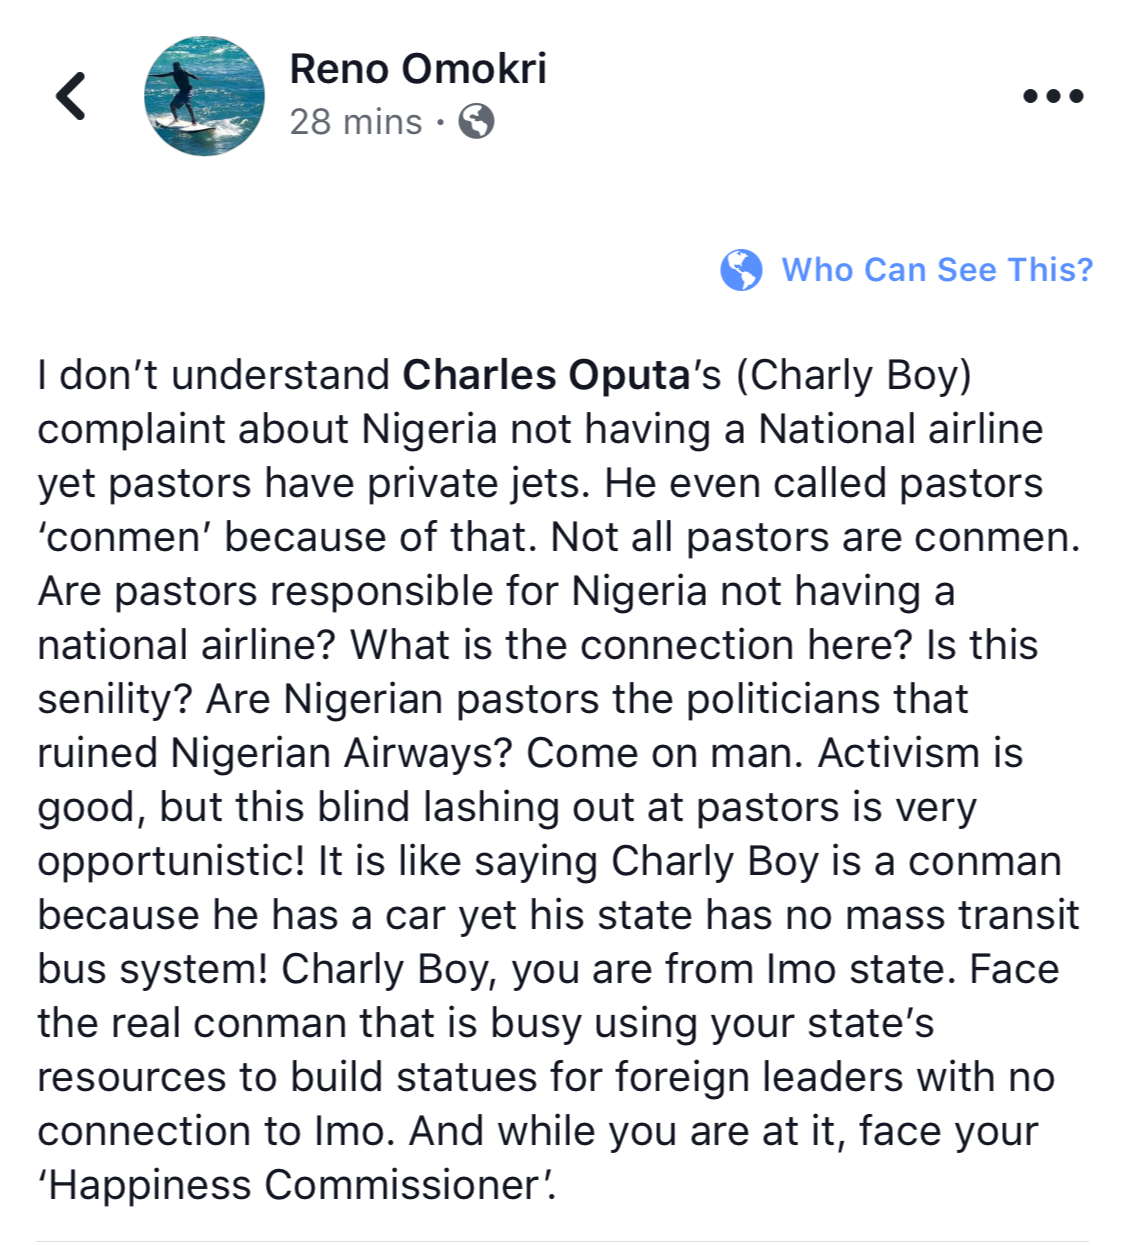 On Charly Boy Calling Pastors Conmen for Having Private Jets- Reno Omokri responds